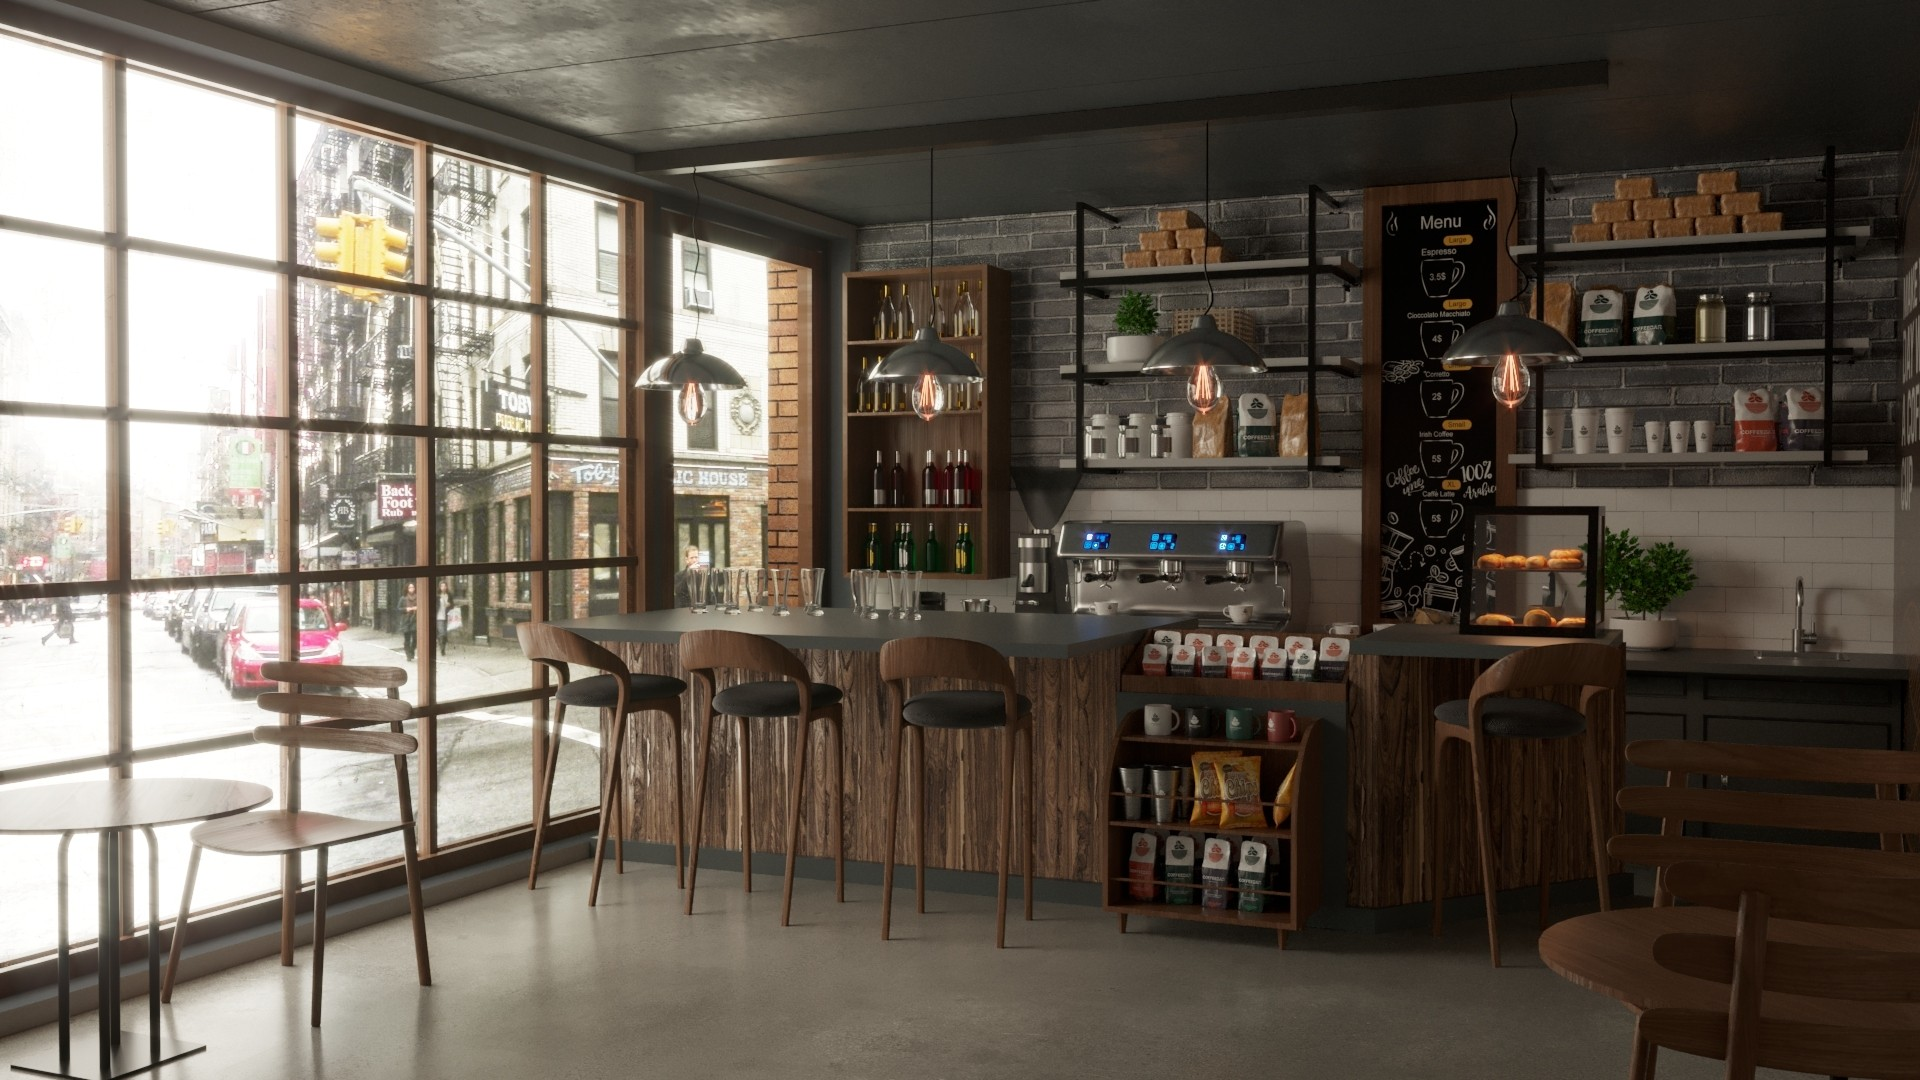 Purchase A 3D Coffee Shop Interior Design Model UK Style | FrogModel